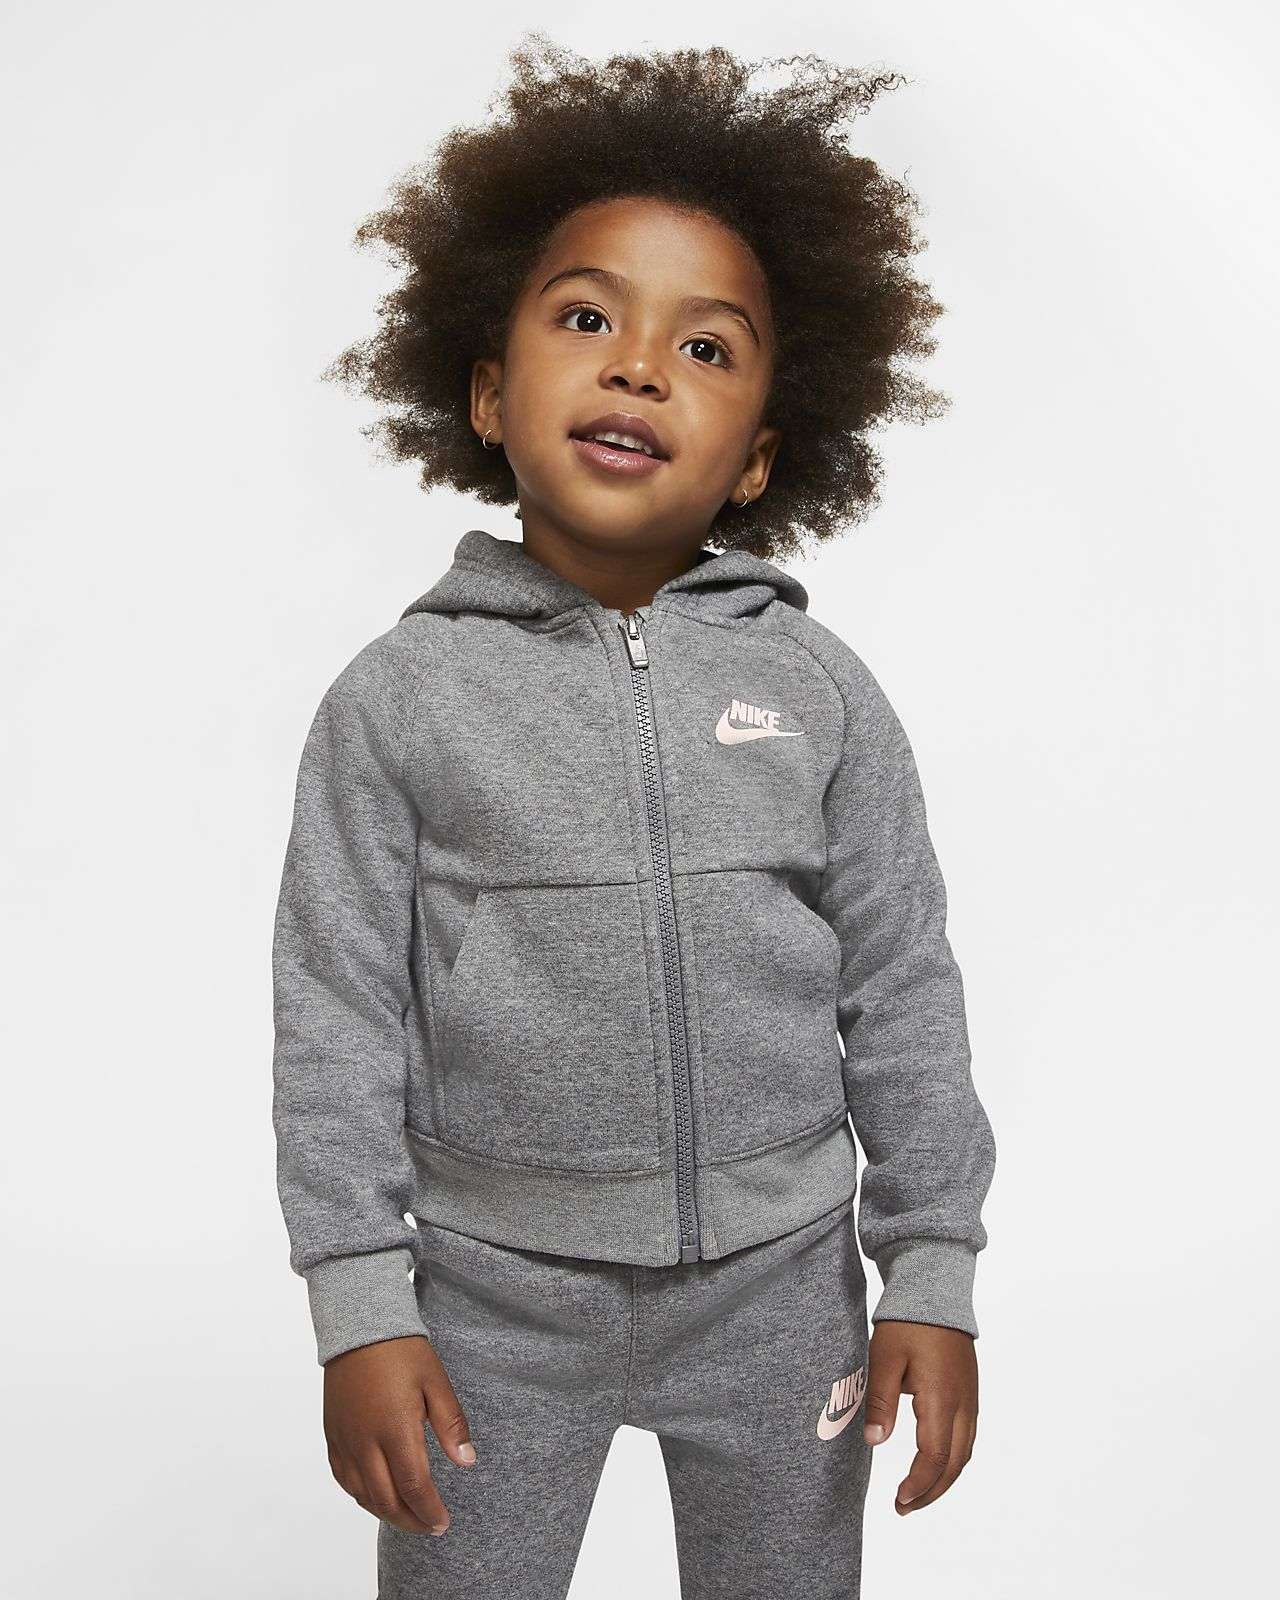 Nike Toddler Hoodie & Joggers 2-Piece Set